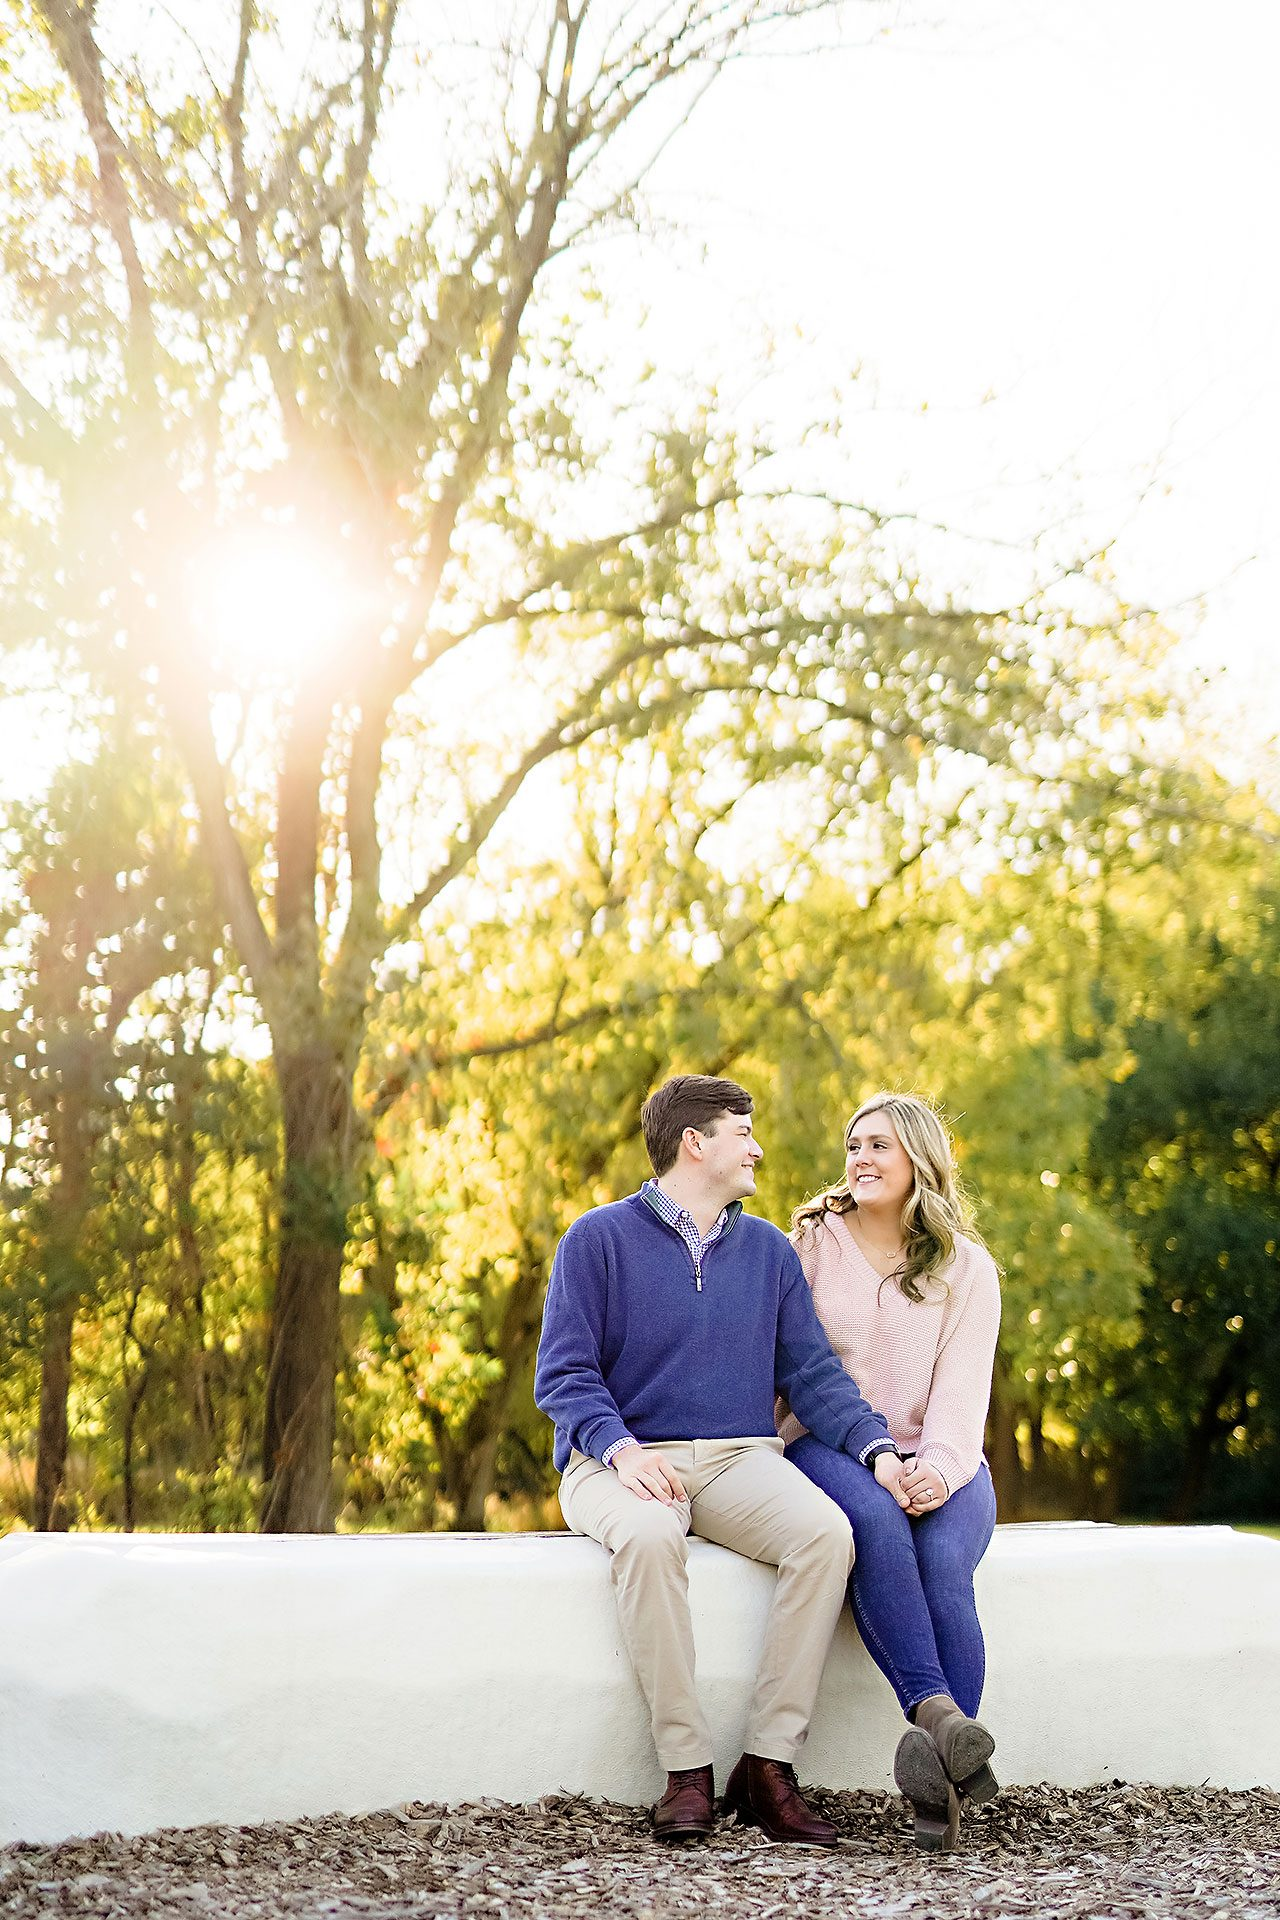 Taylor Case Newfields Engagement Session 119